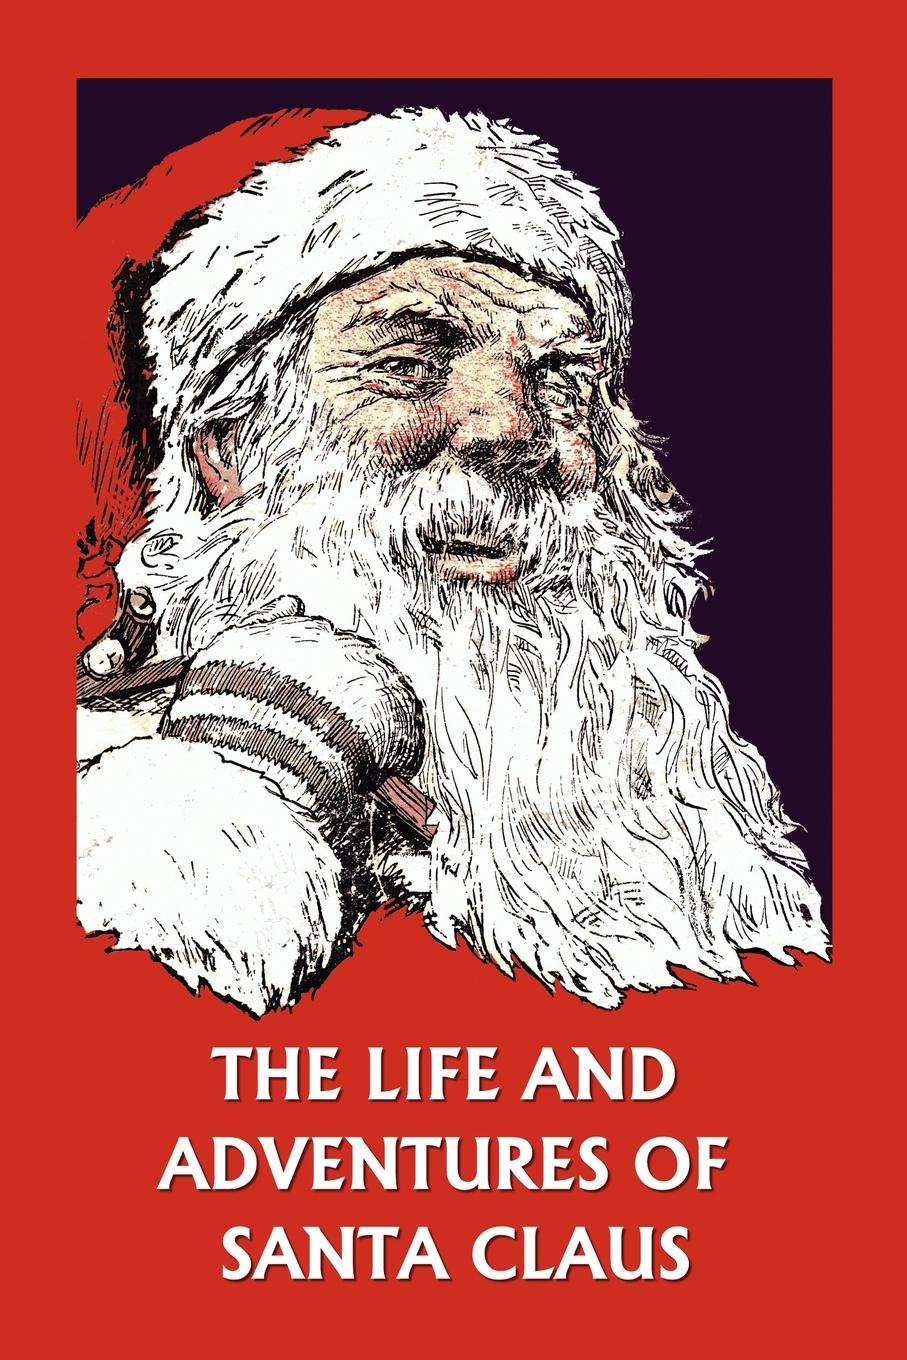 Amelia C. Houghton The Life and Adventures of Santa Claus